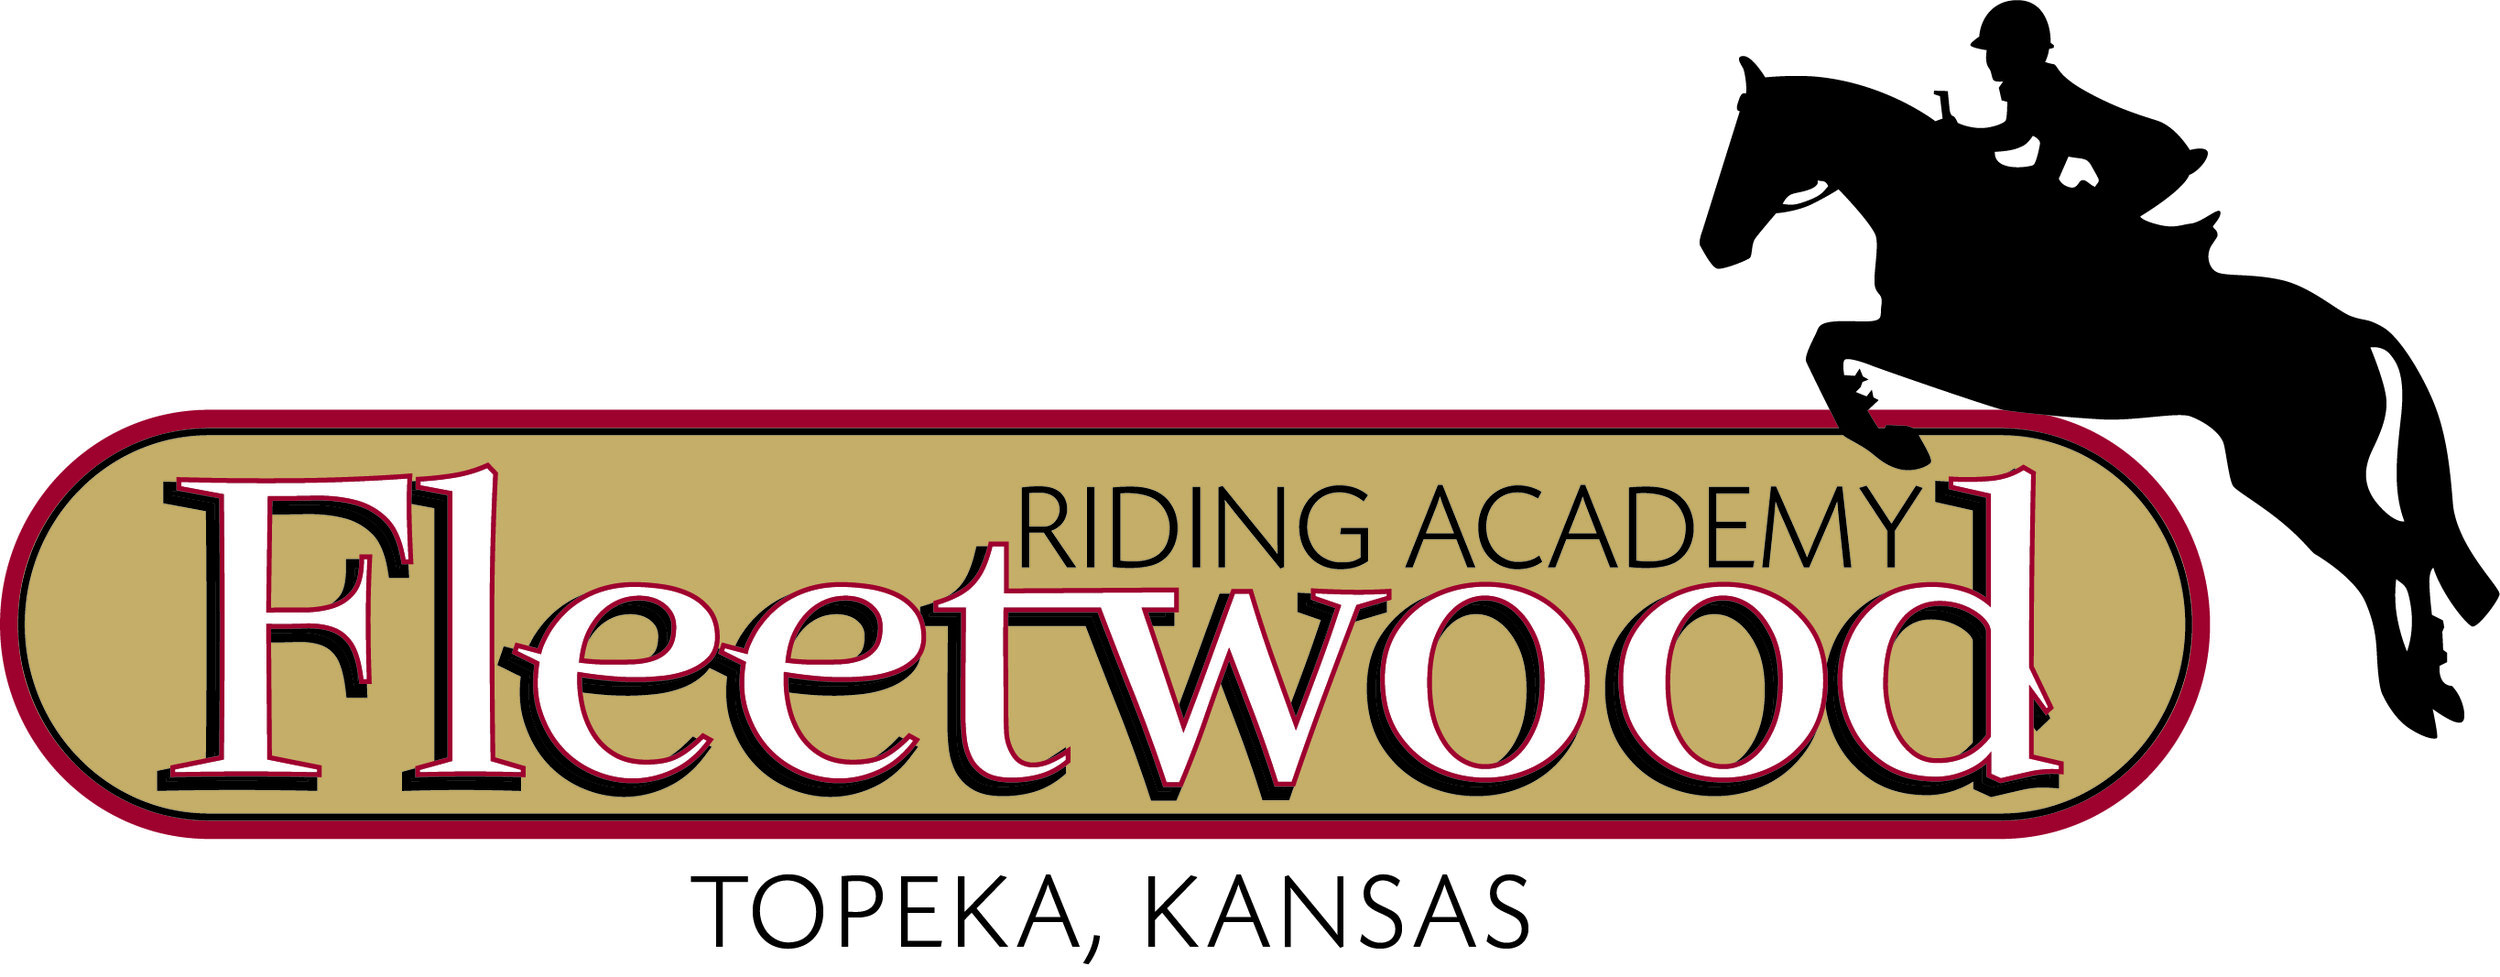 """Fleetwood Riding Academy - Kylie Fowler - """"Fleetwood Riding Academy located in Topeka, KS, is honored to sponsor """"the jump"""" at the Confederation National show here at beautiful Haras. Fleetwood Riding Academy wishes all riders Good Luck!!!"""""""